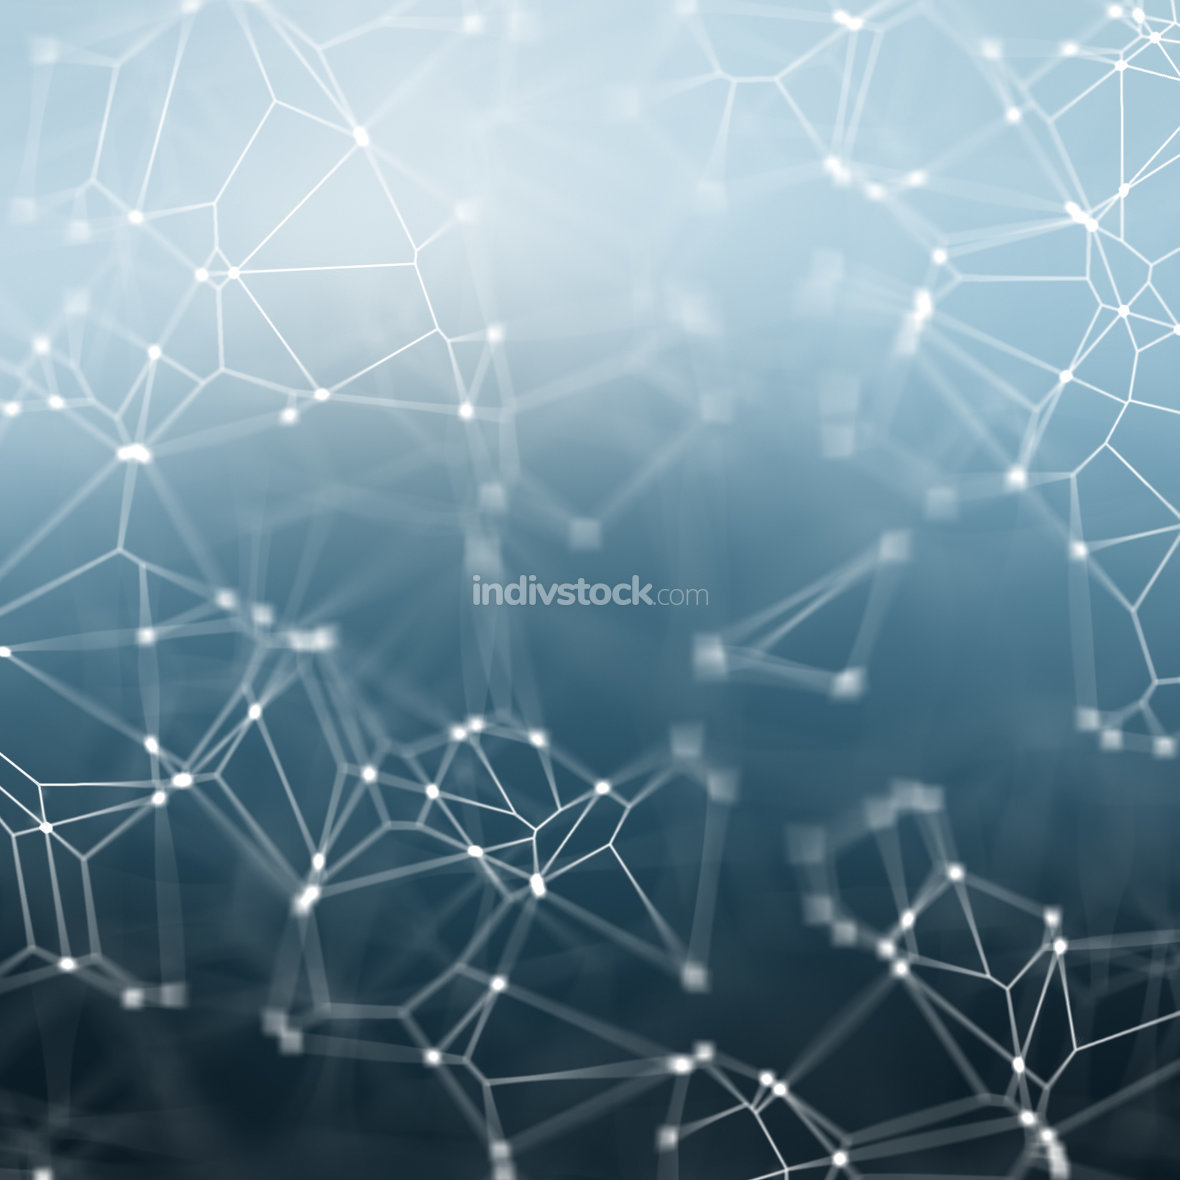 blue abstract network background